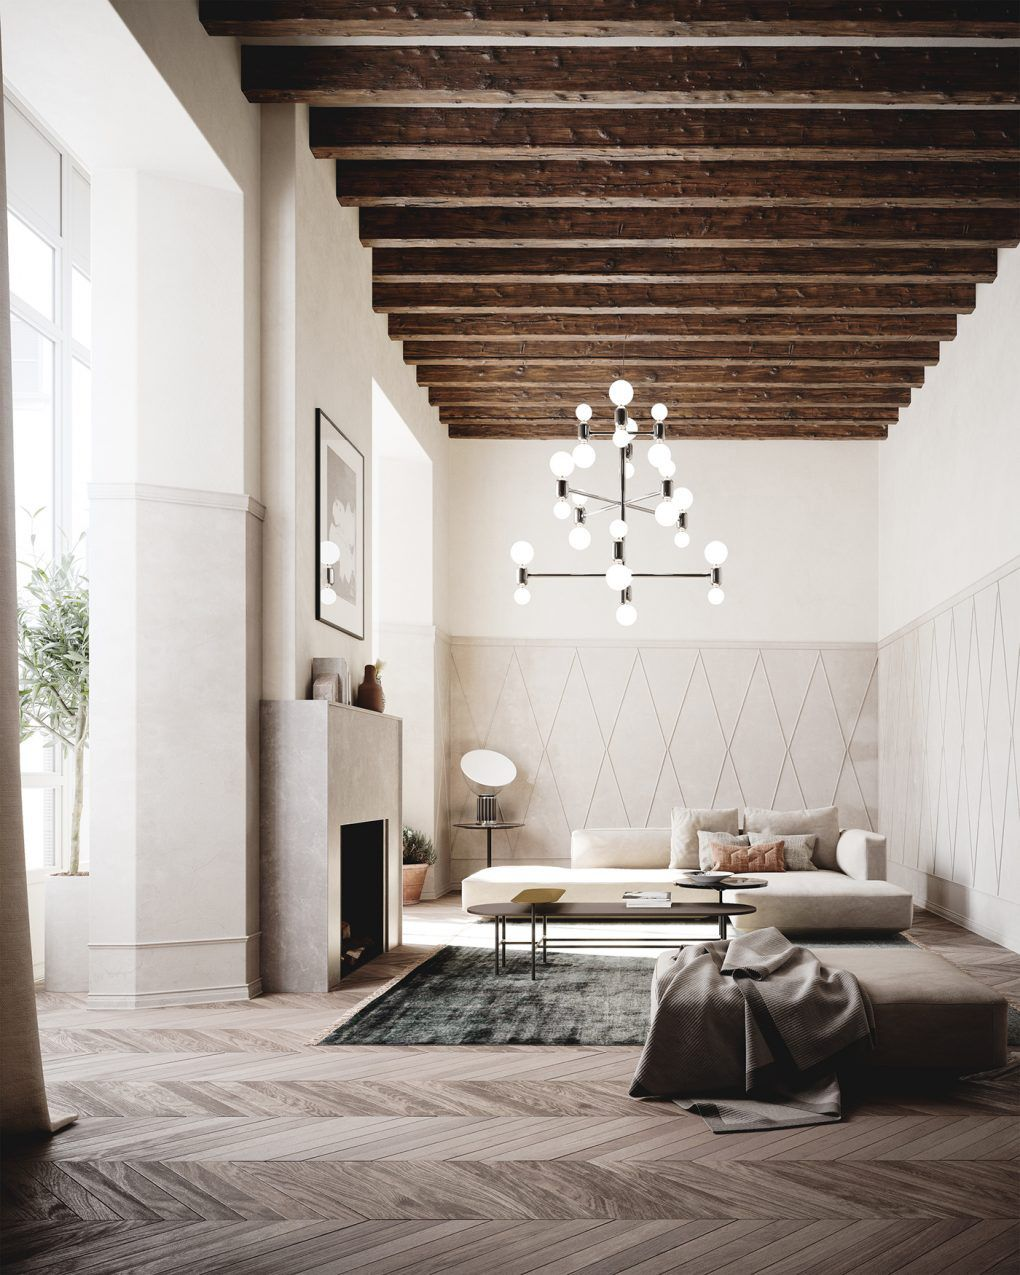 Minimalistic living room home nutrition stripped nutritionstripped the minimalist in pinterest interior design and also rh